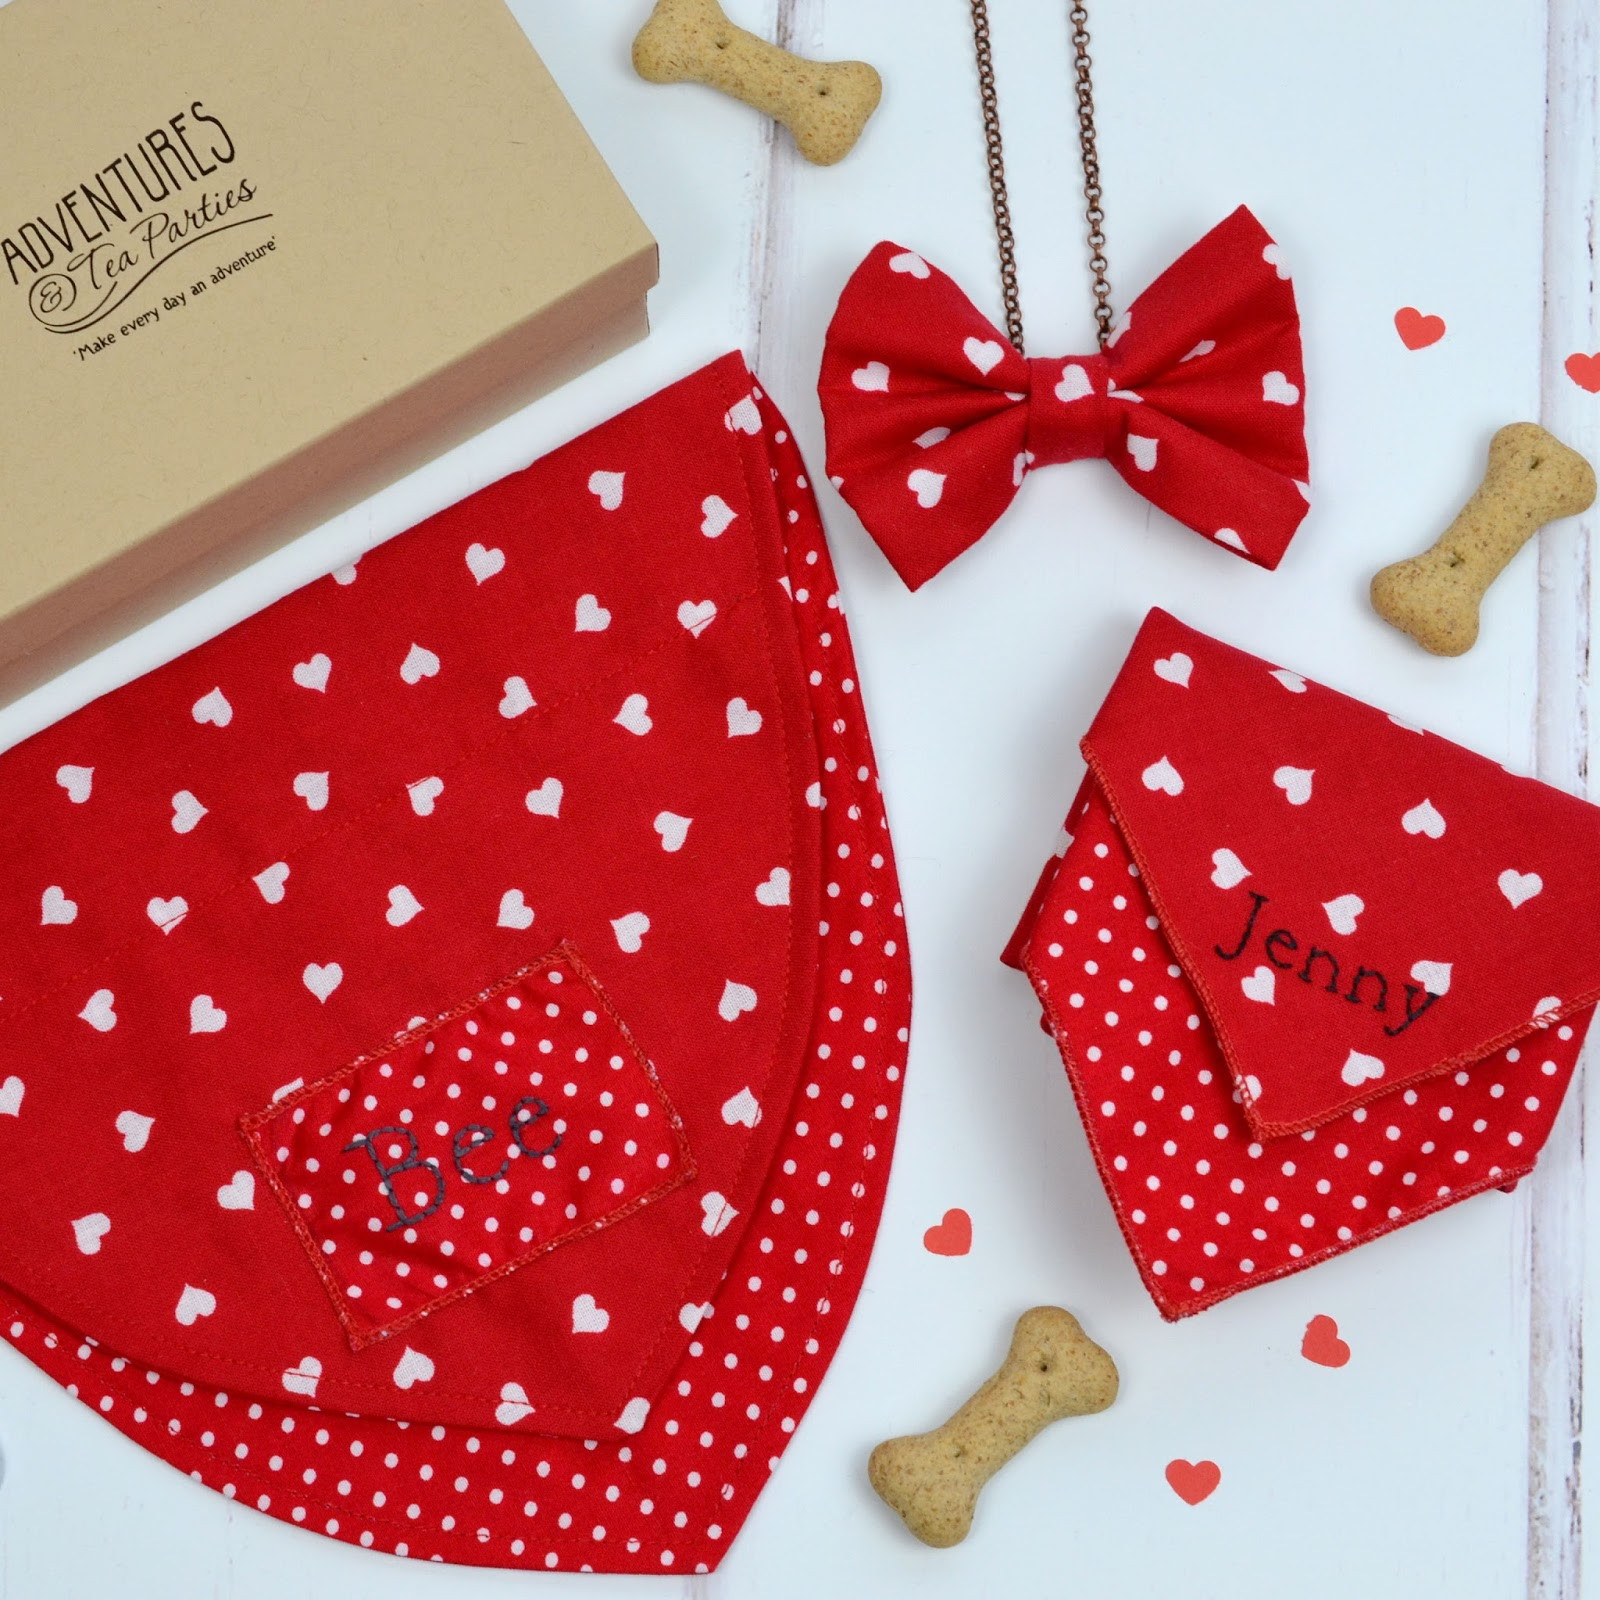 Dog Lovers Gift Set by Adventures & Tea Parties